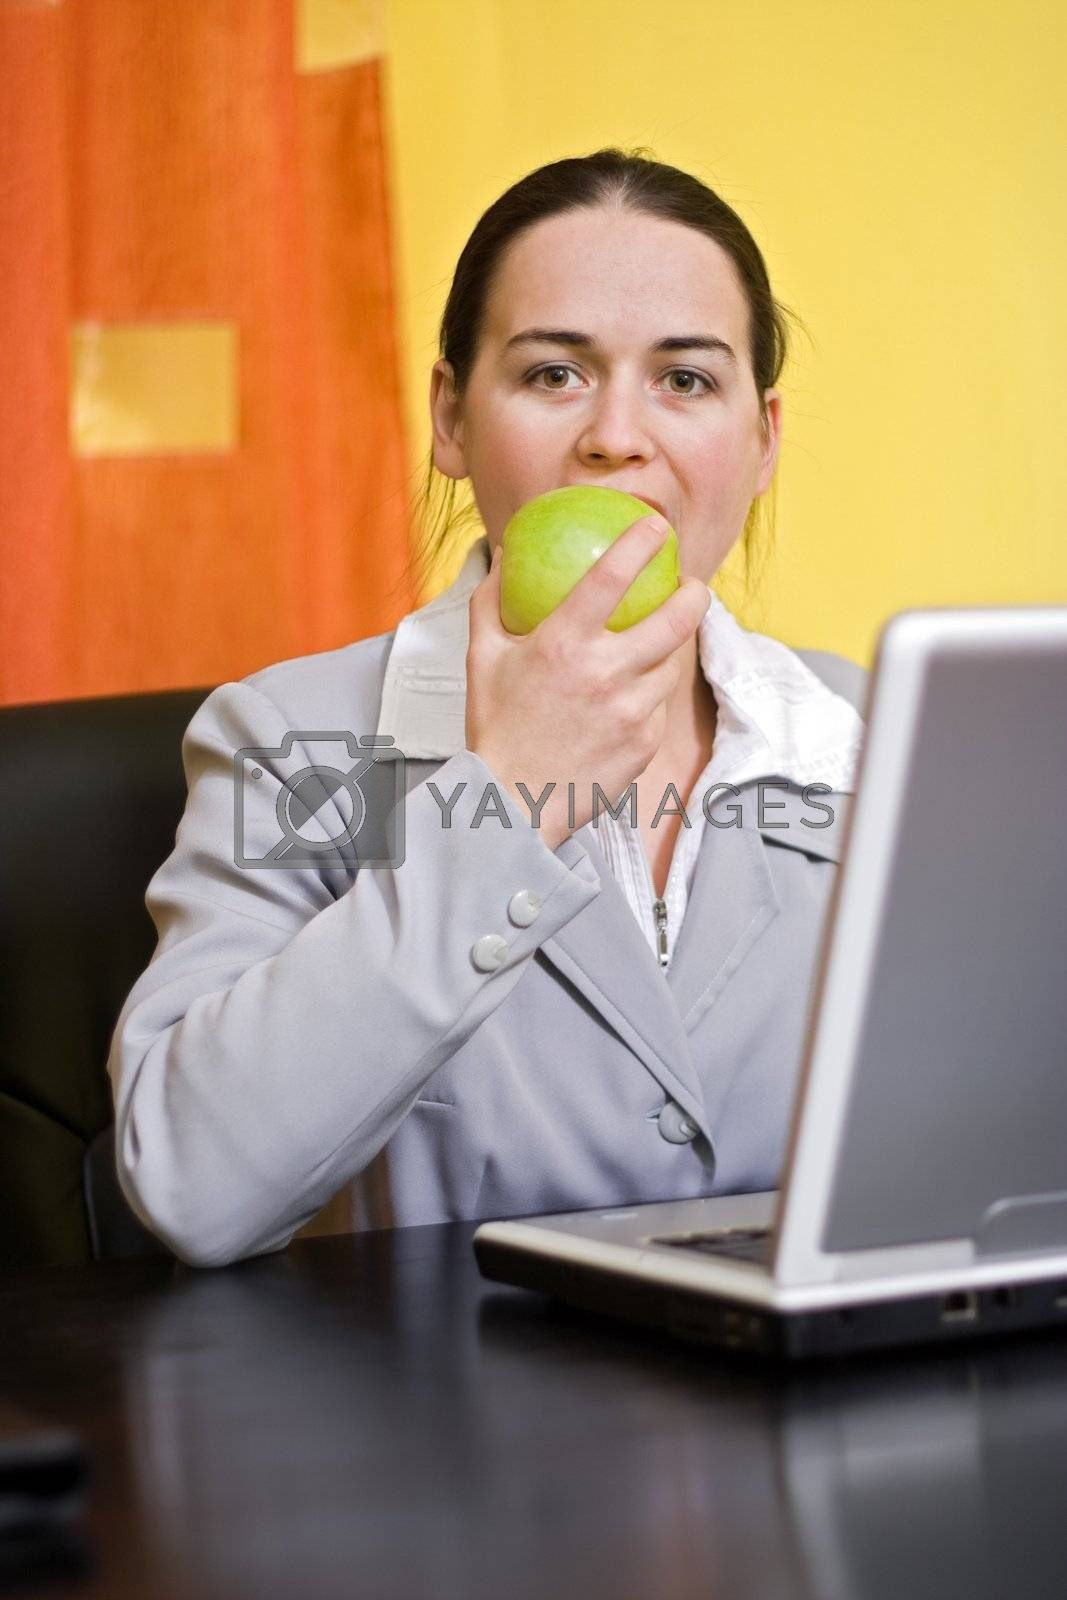 Business woman's healthy bite in a green apple